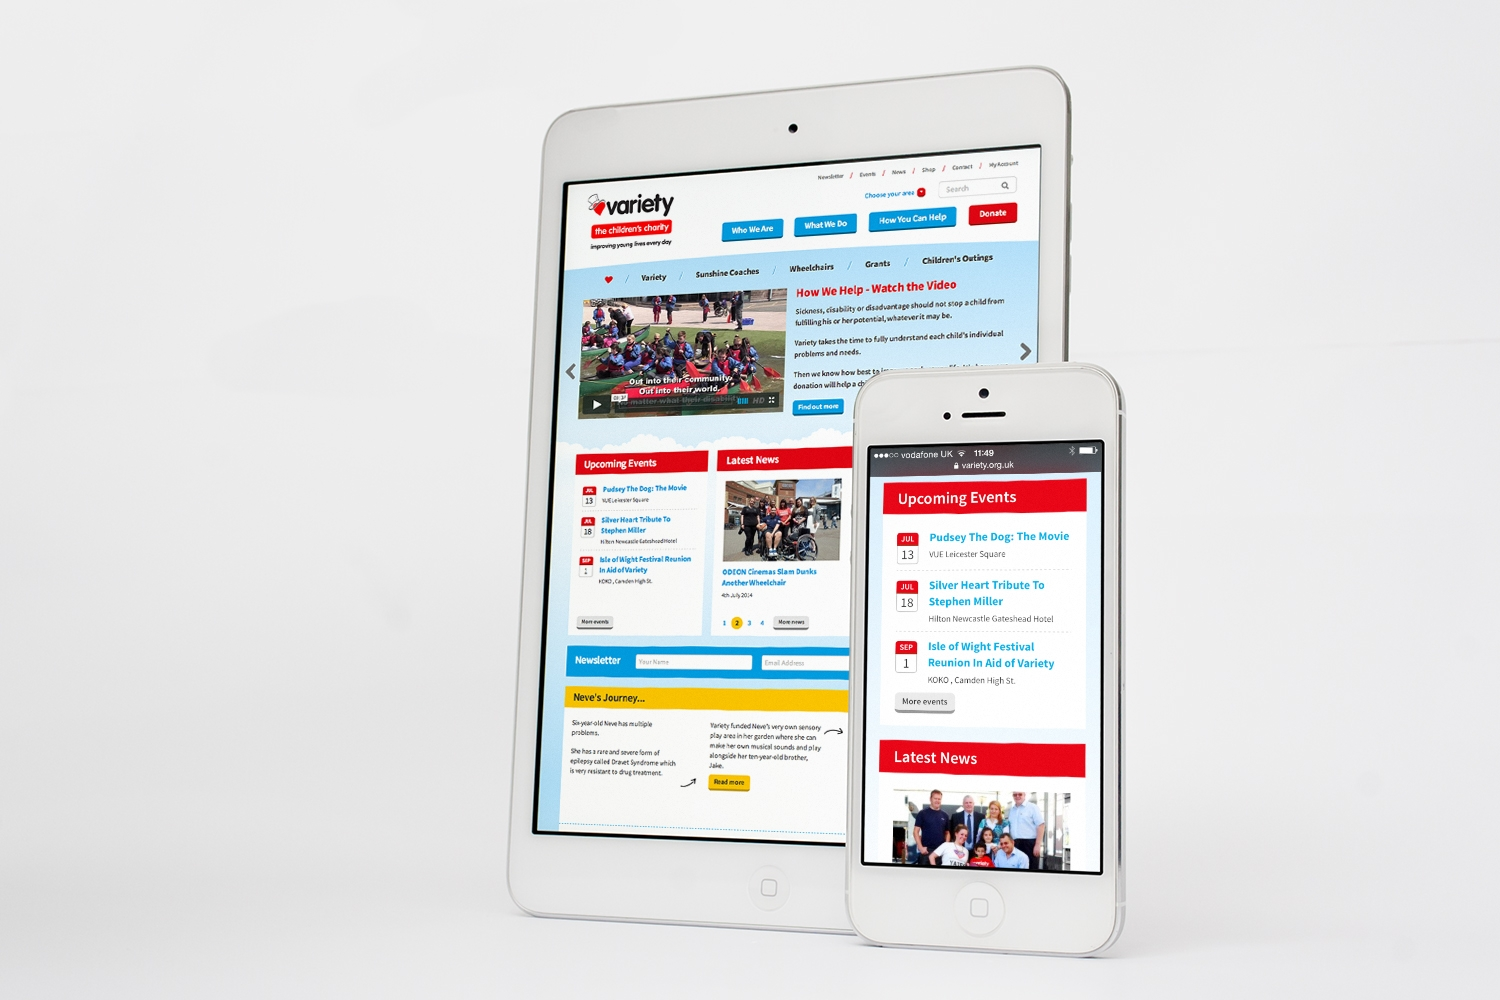 Variety website on tablet and phone